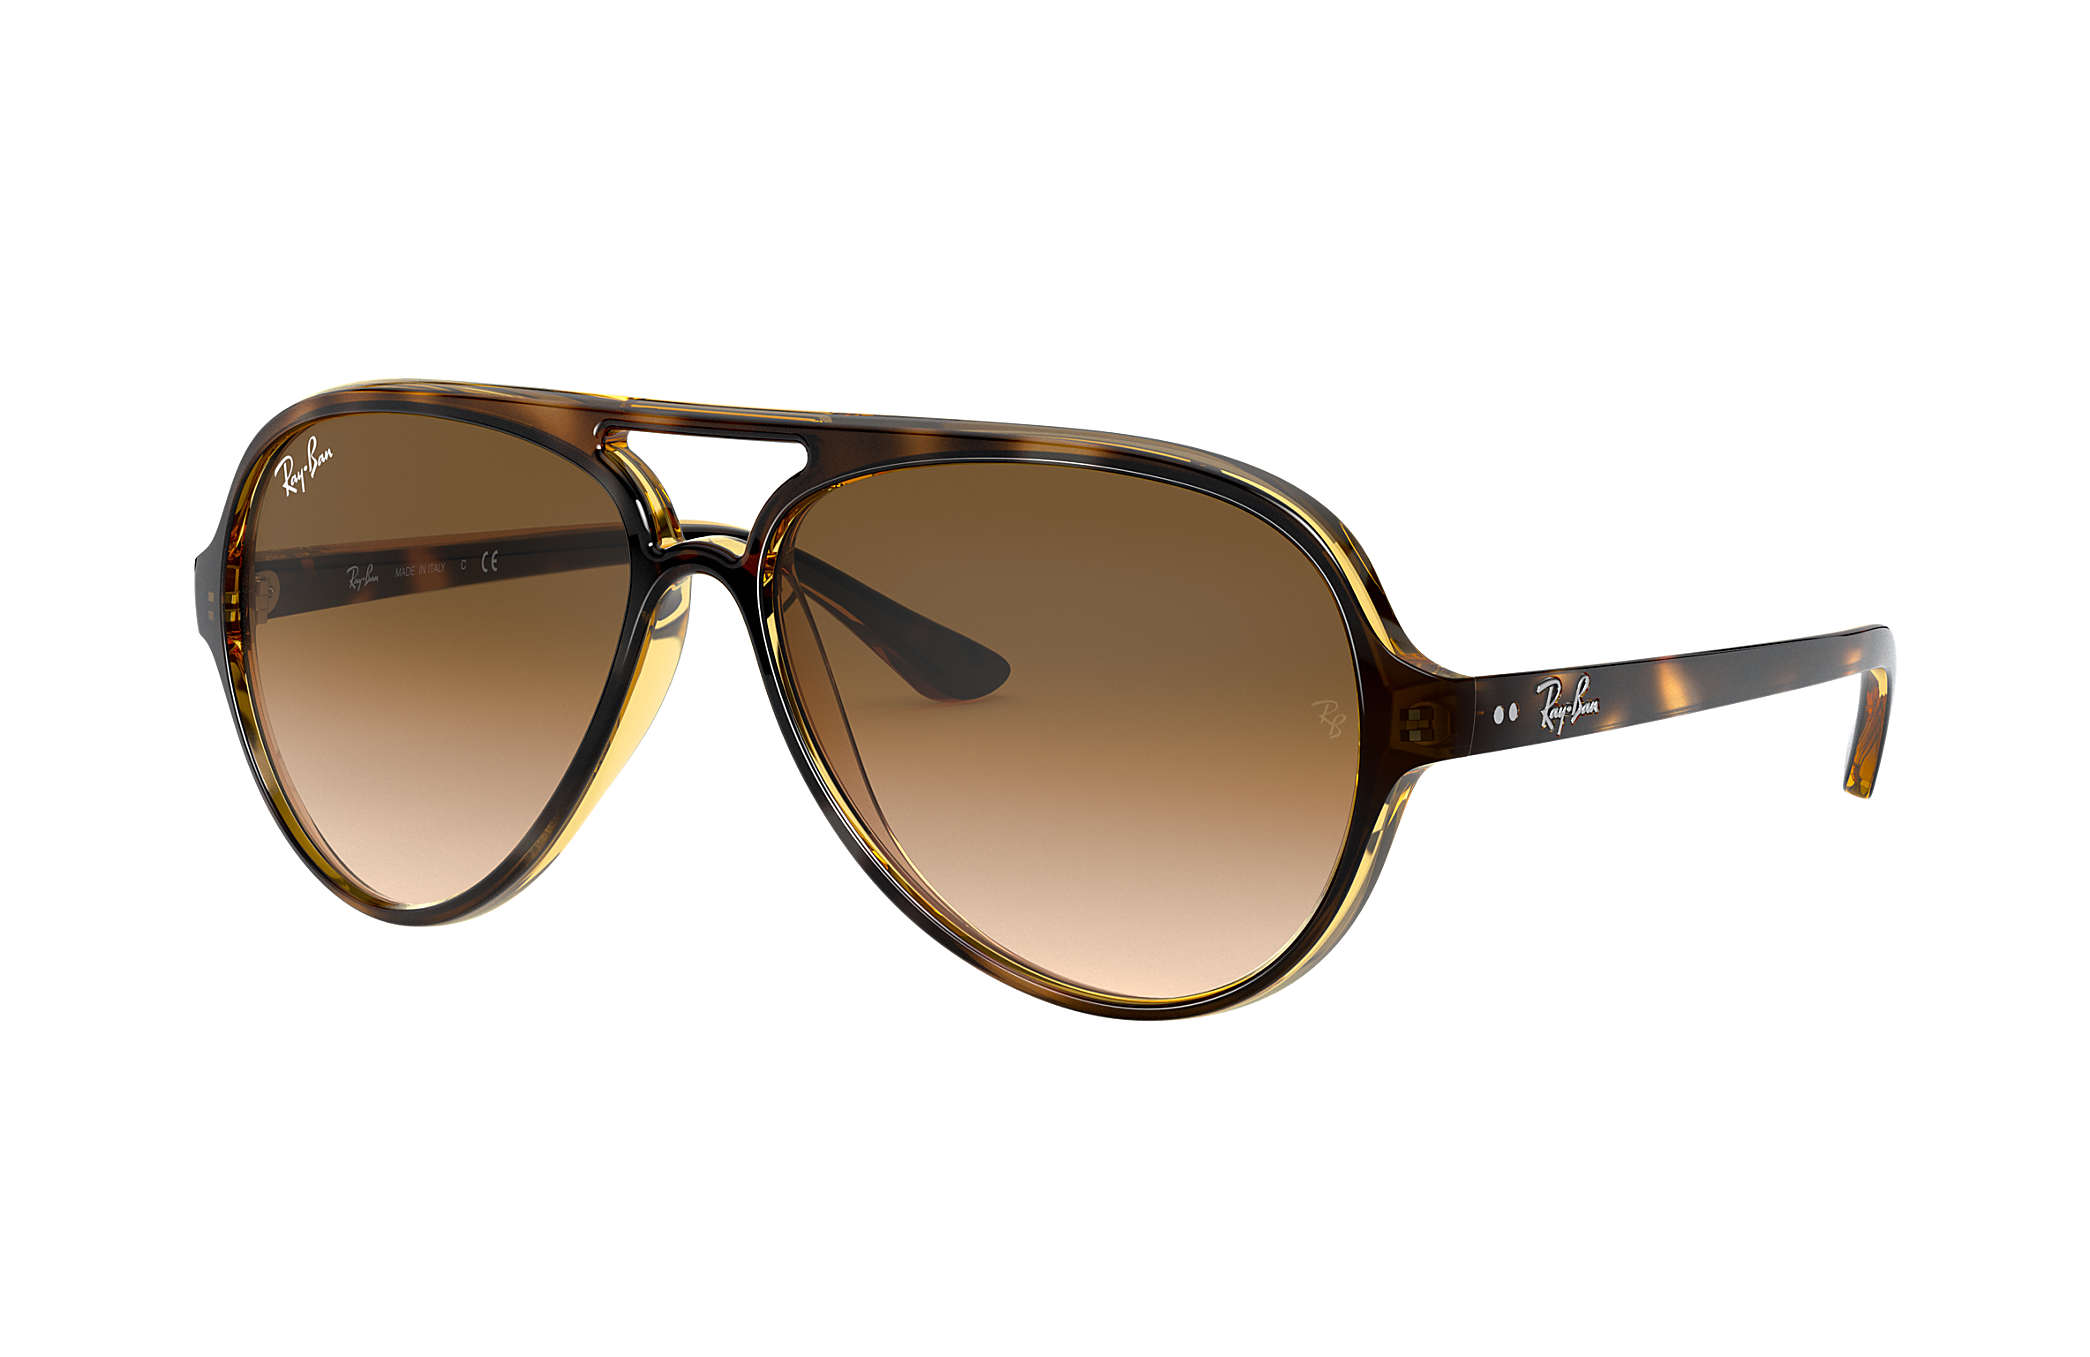 Ray ban sunglasses with price - Ray Ban 0rb4125 Cats 5000 Classic Tortoise Sun